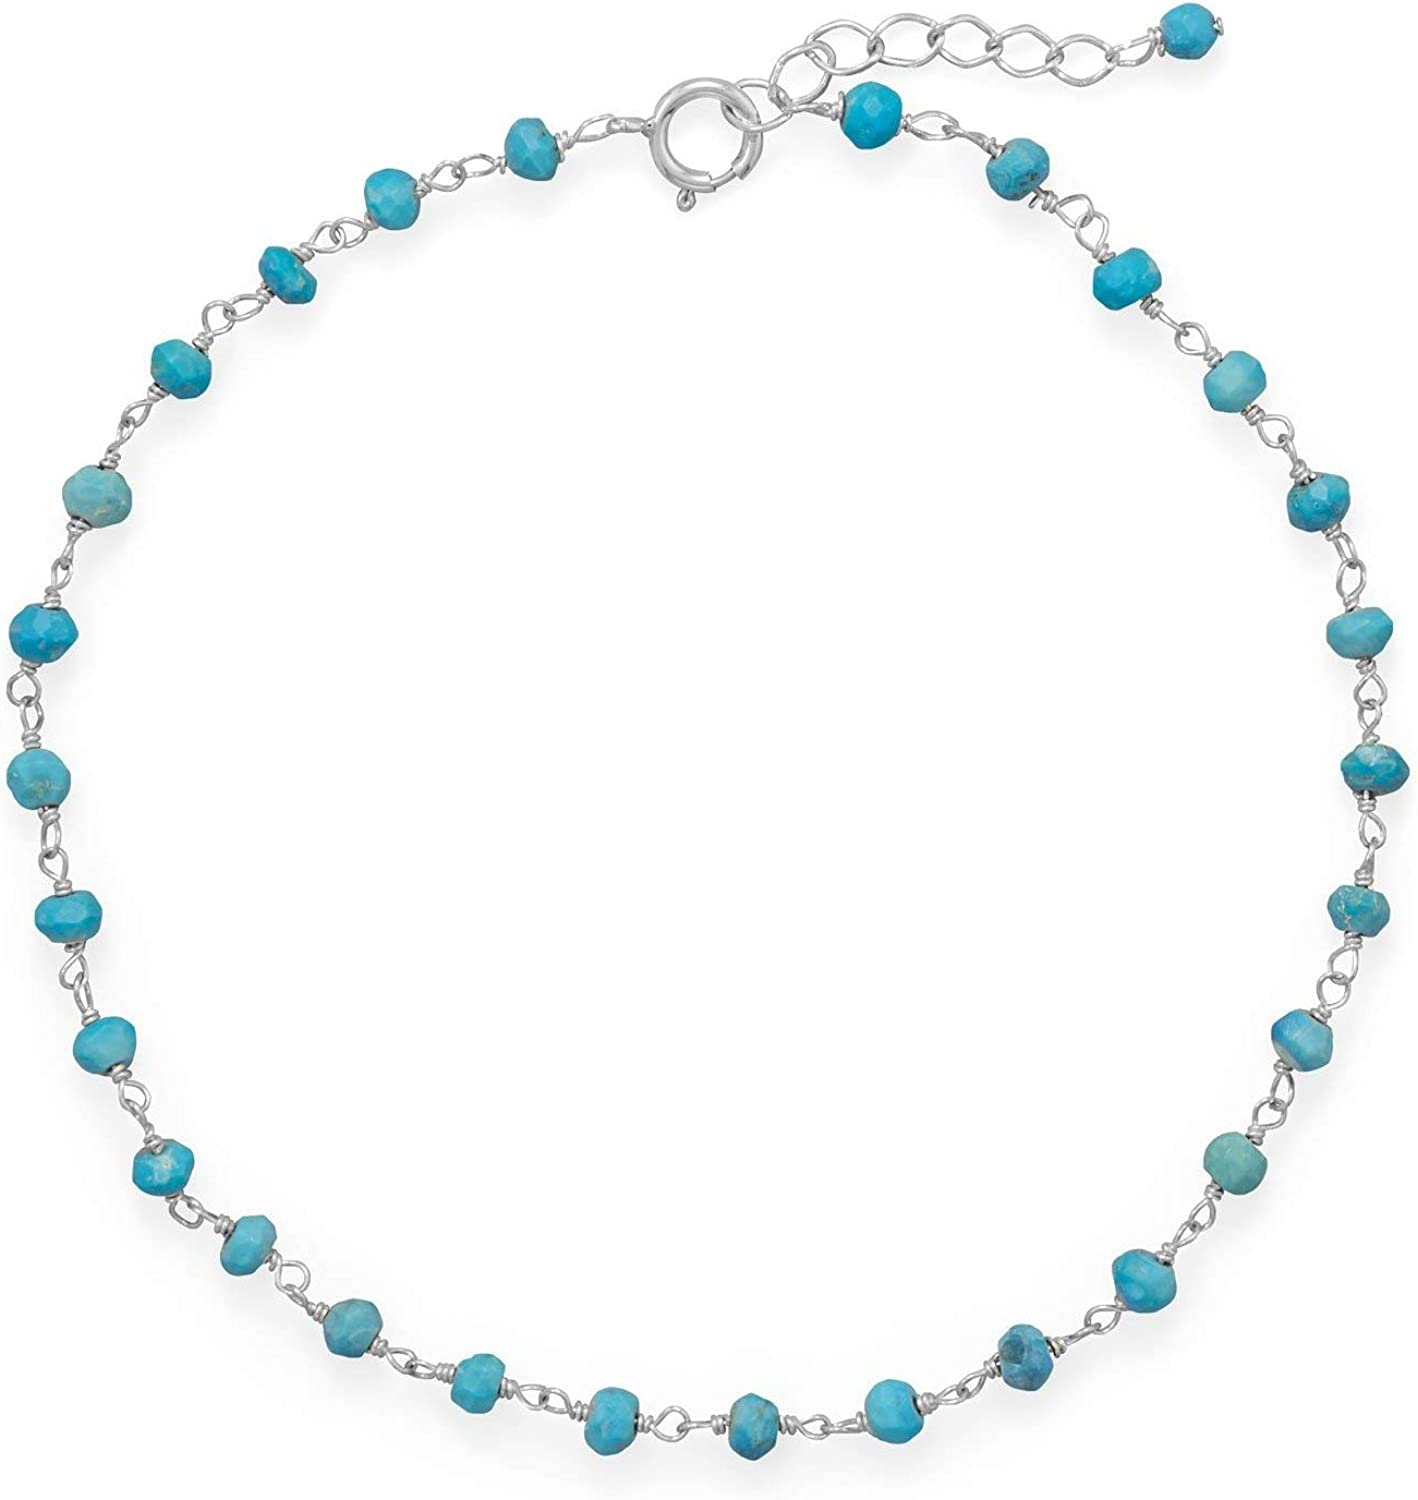 Reconstituted Turquoise Anklet Adjustable Length Rhodium-plated